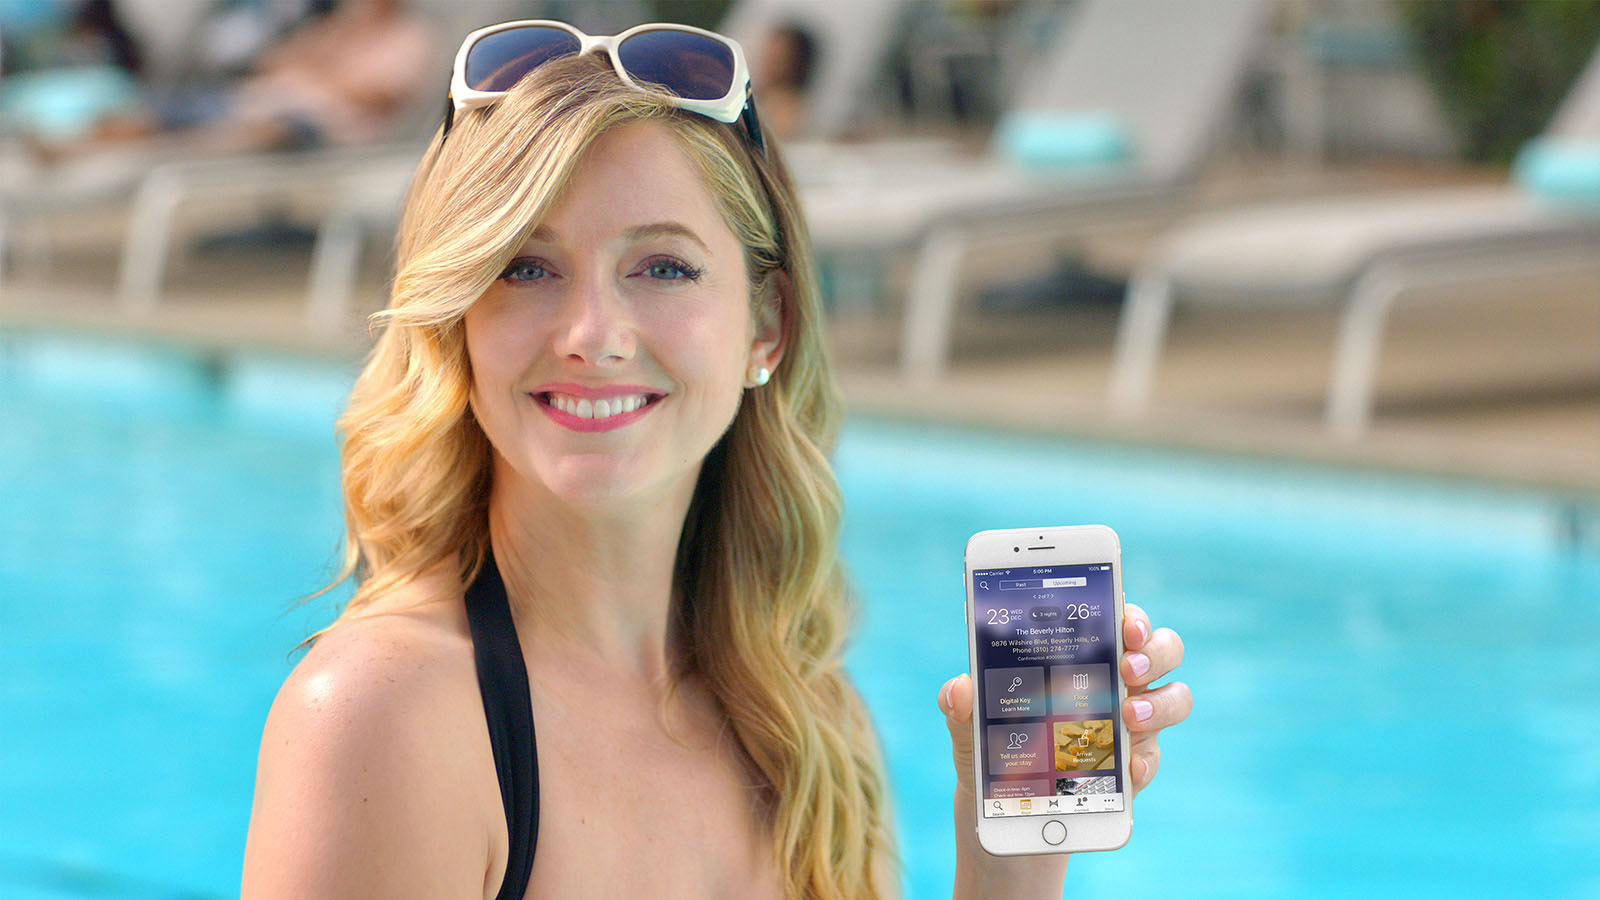 Woman next to pool holding smartphone